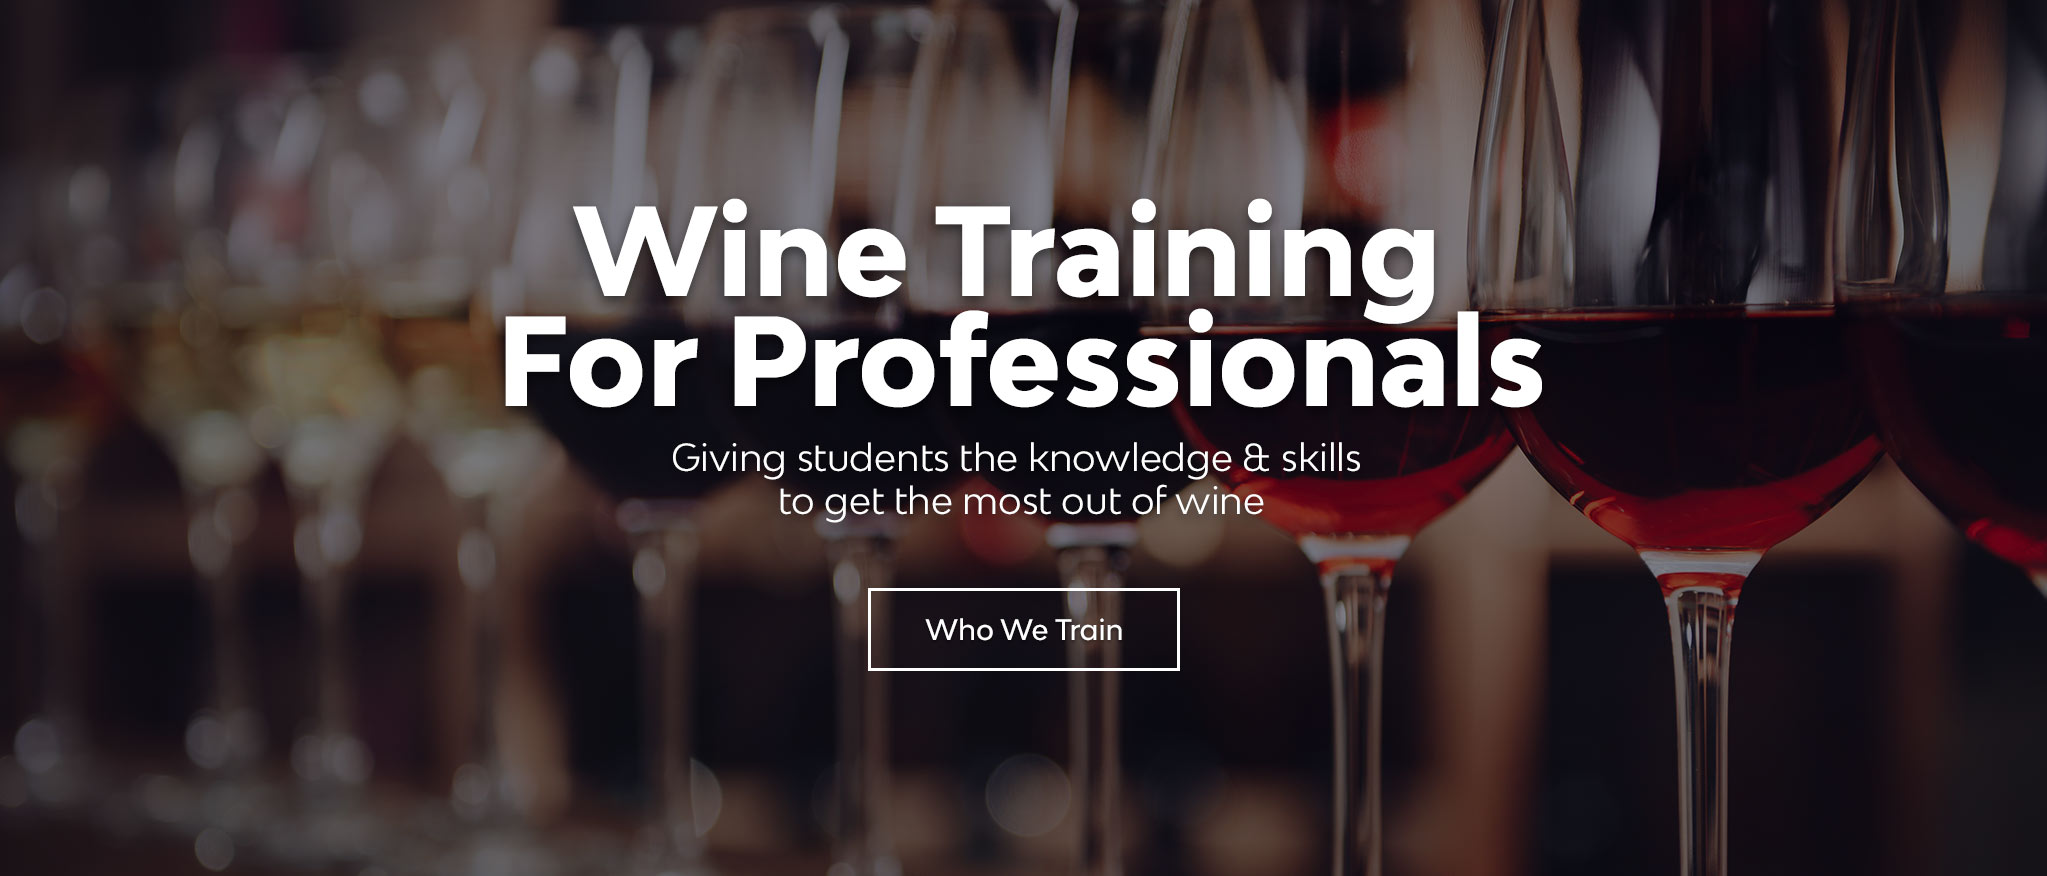 Wine Training For Professionals